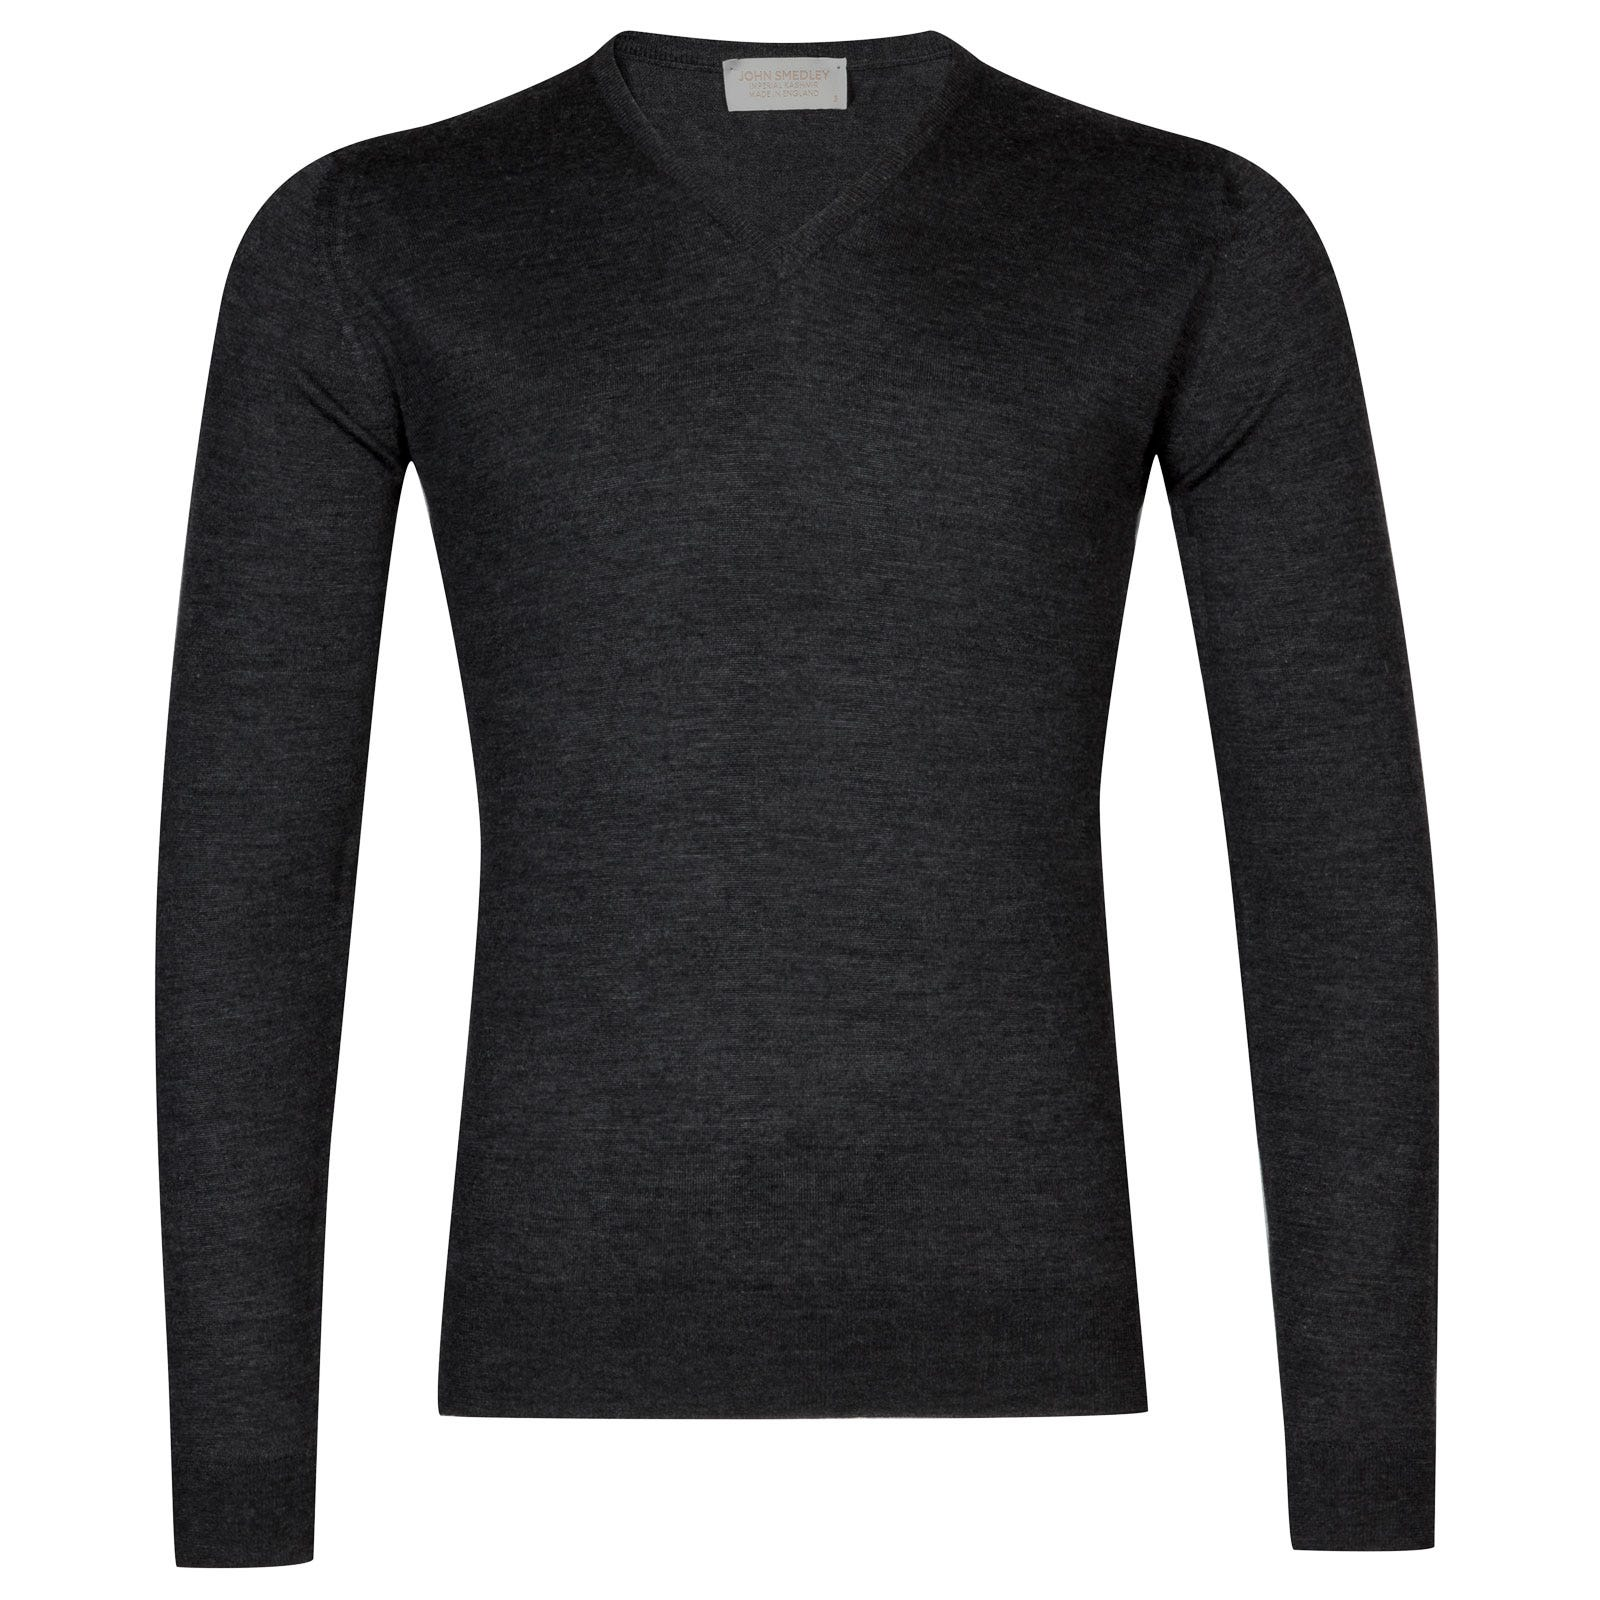 John Smedley newark Merino Wool and Cashmere Pullover in Charcoal-XL